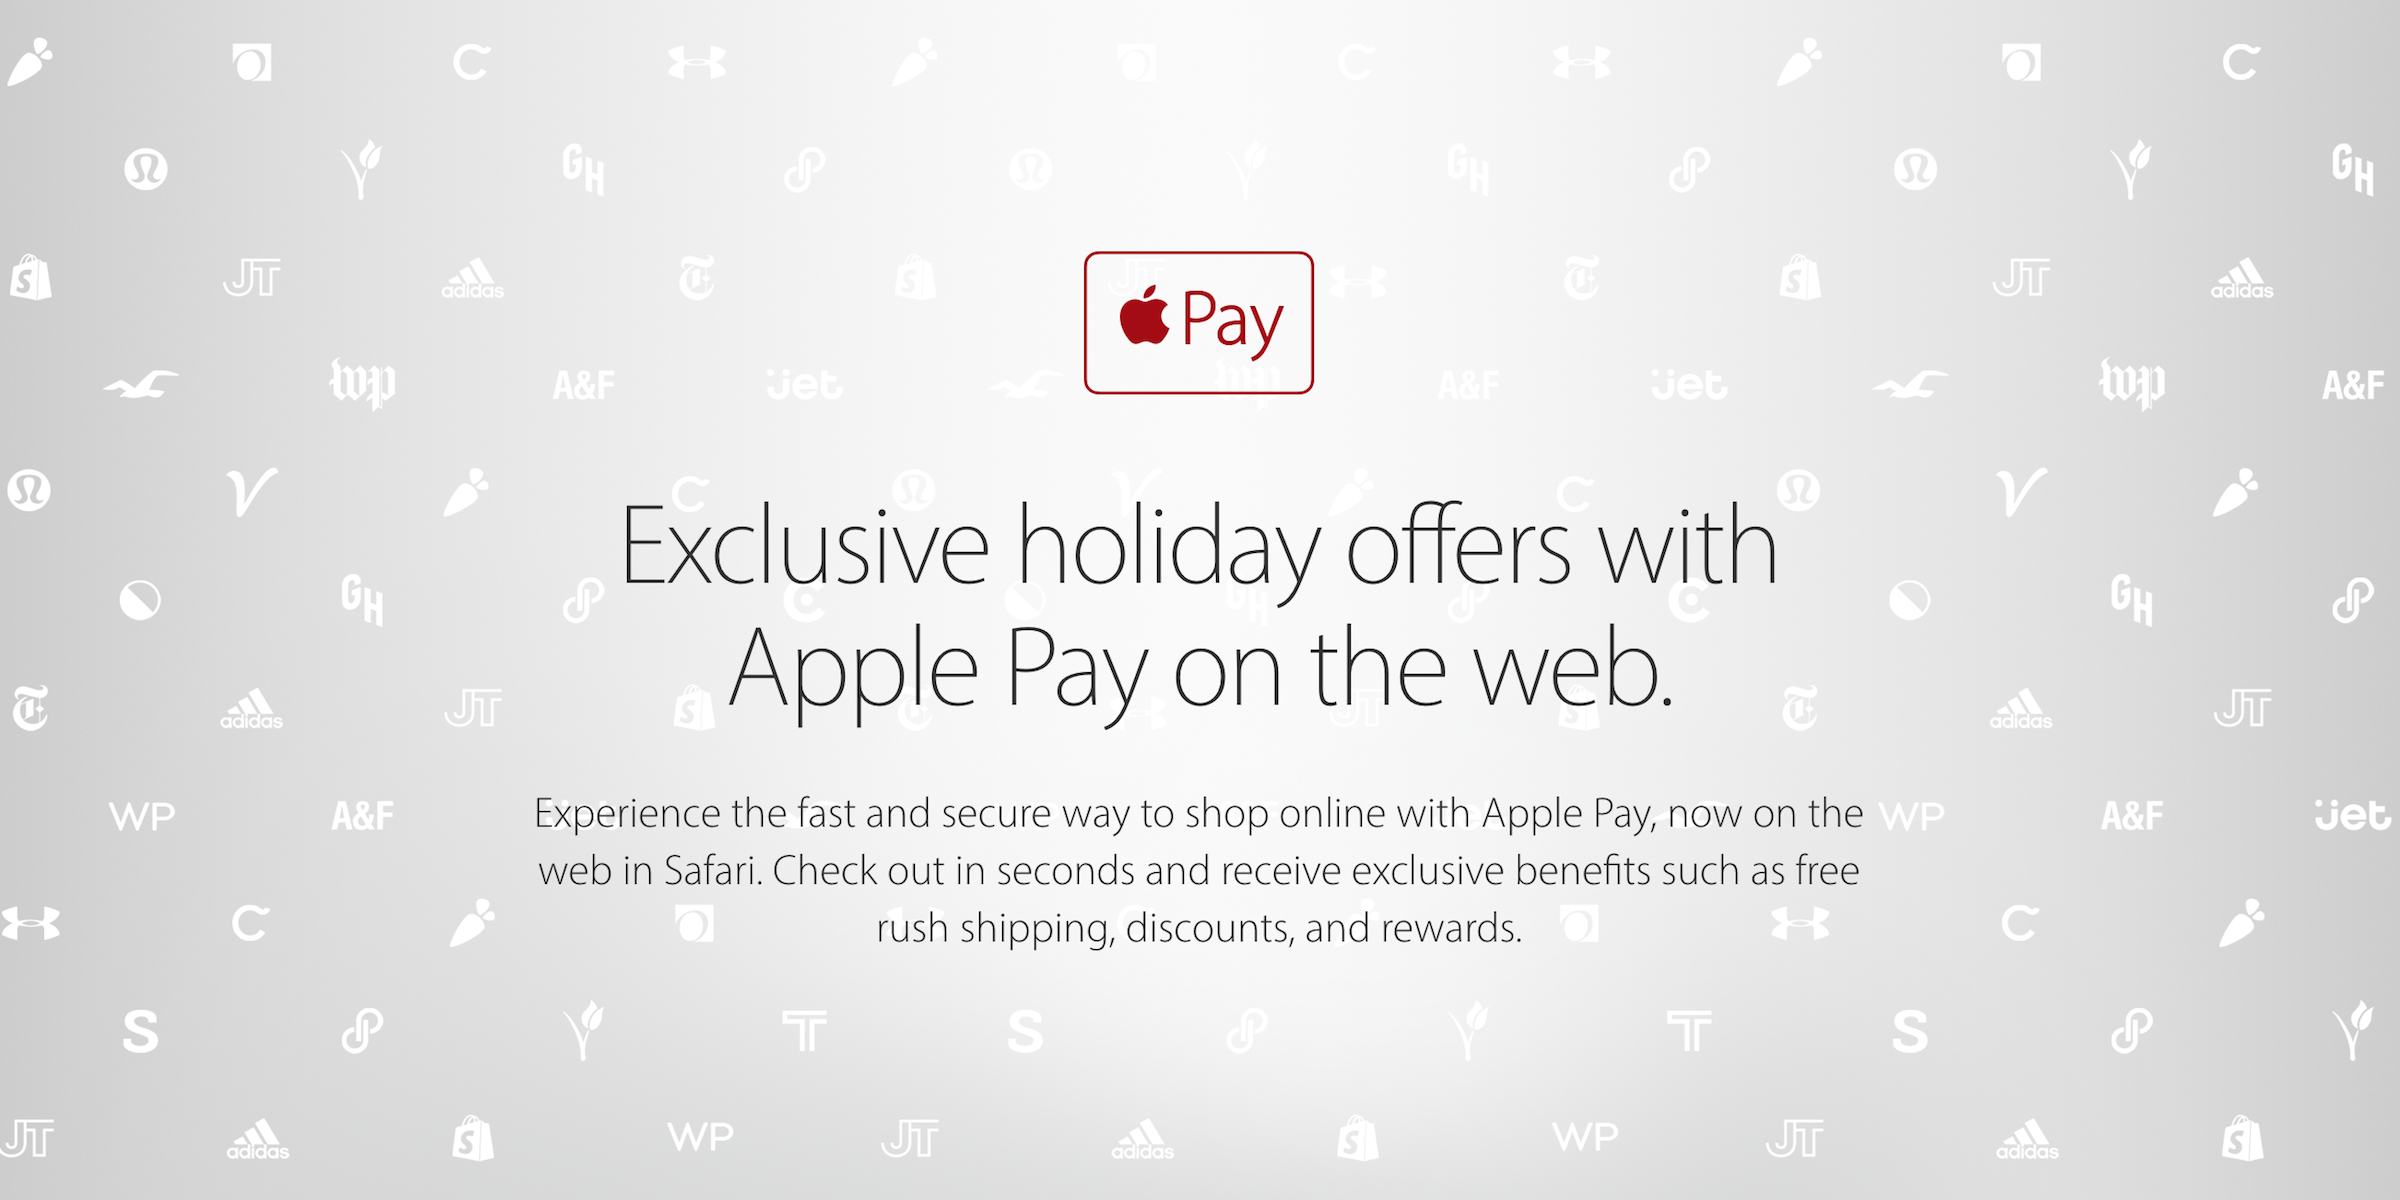 apple-pay-on-web-deals